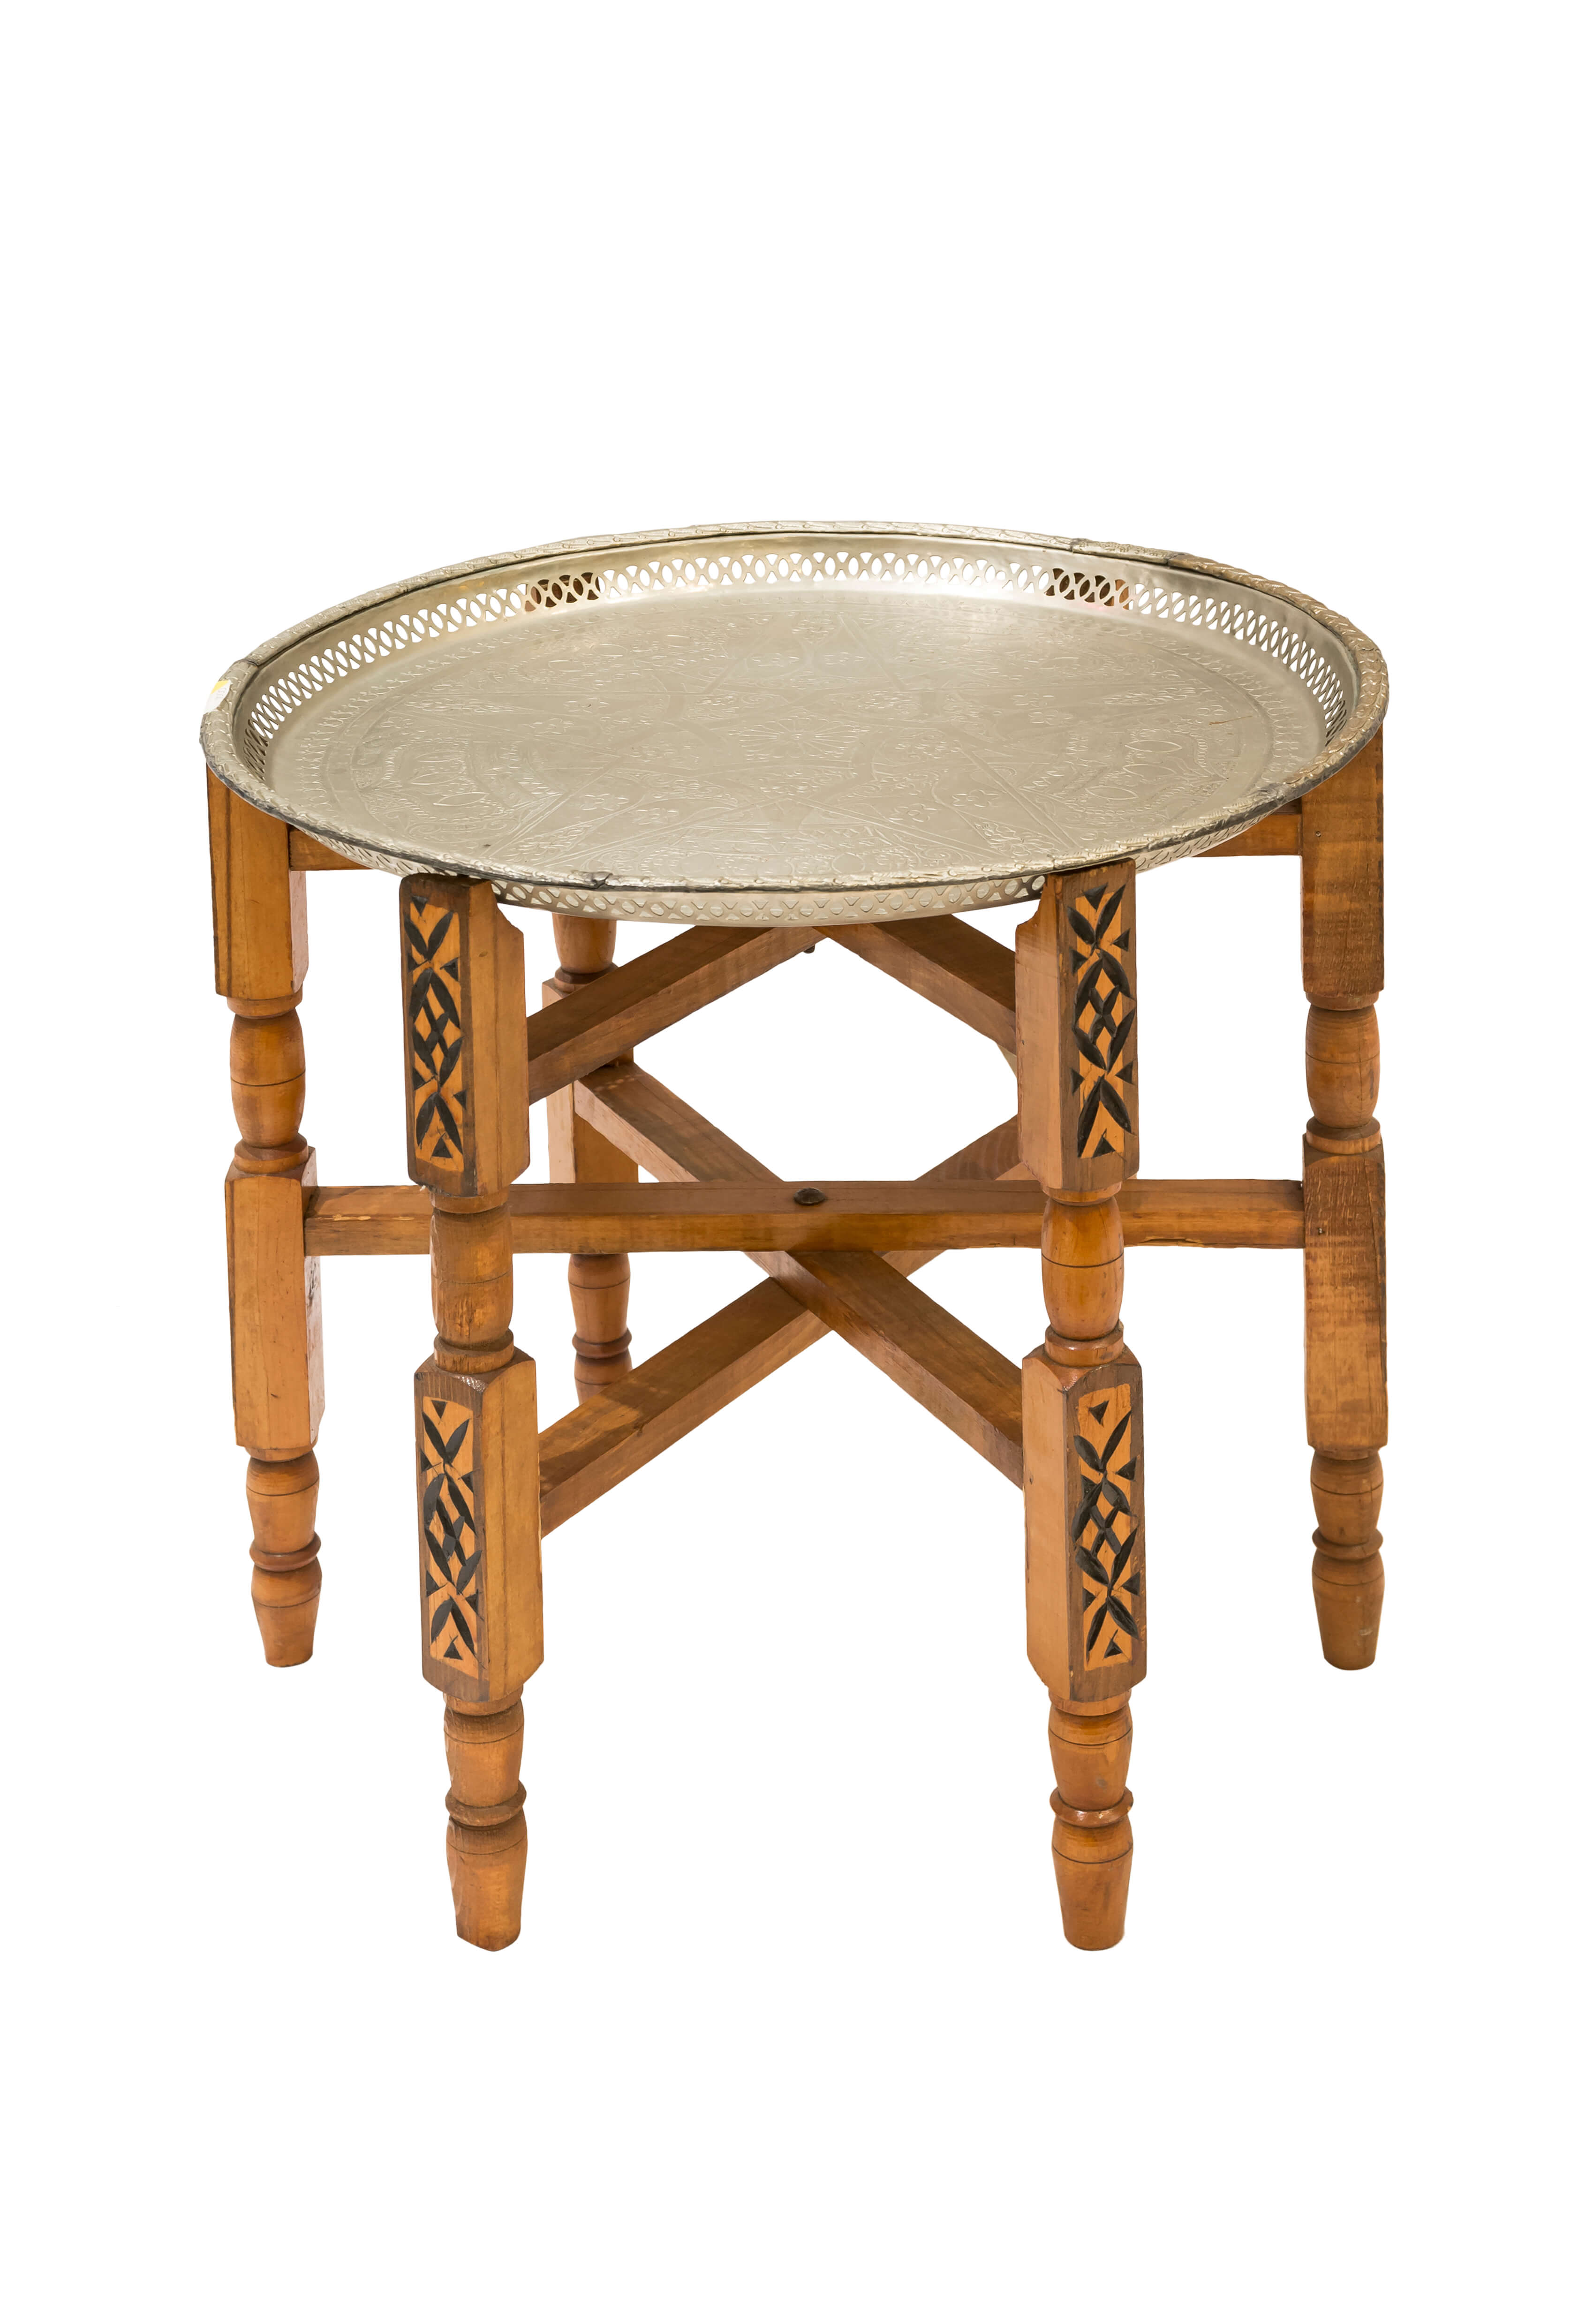 Moroccan wooden table with tray